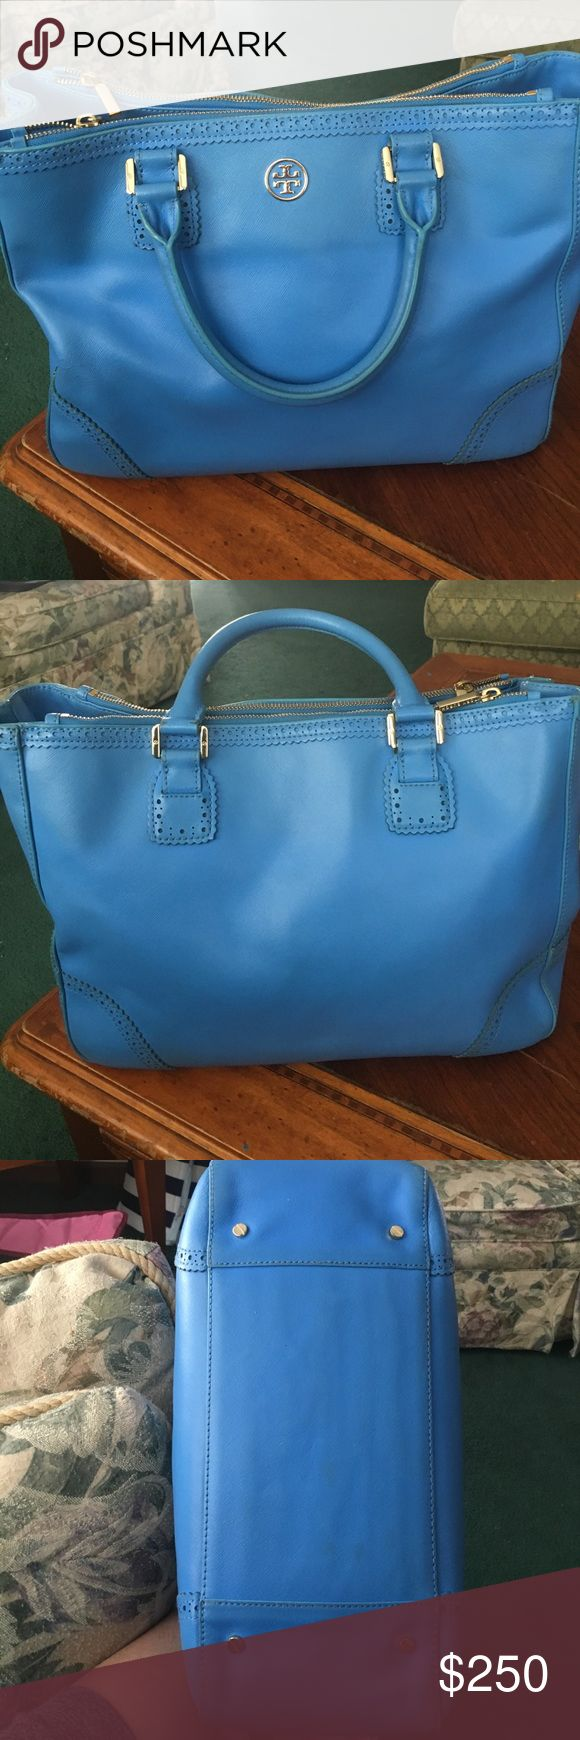 Limited Edition Tory Burch Robinson Pre loved Tory burch Robinson sky blue large tote. Has the expected wear and tear as shown in the pictures , has gorgeous lace edges, it's a Neiman Marcus limited edition bag. No low ball offers or trade offers !!  Trade value is $$$650$$$$ Tory Burch Bags Totes